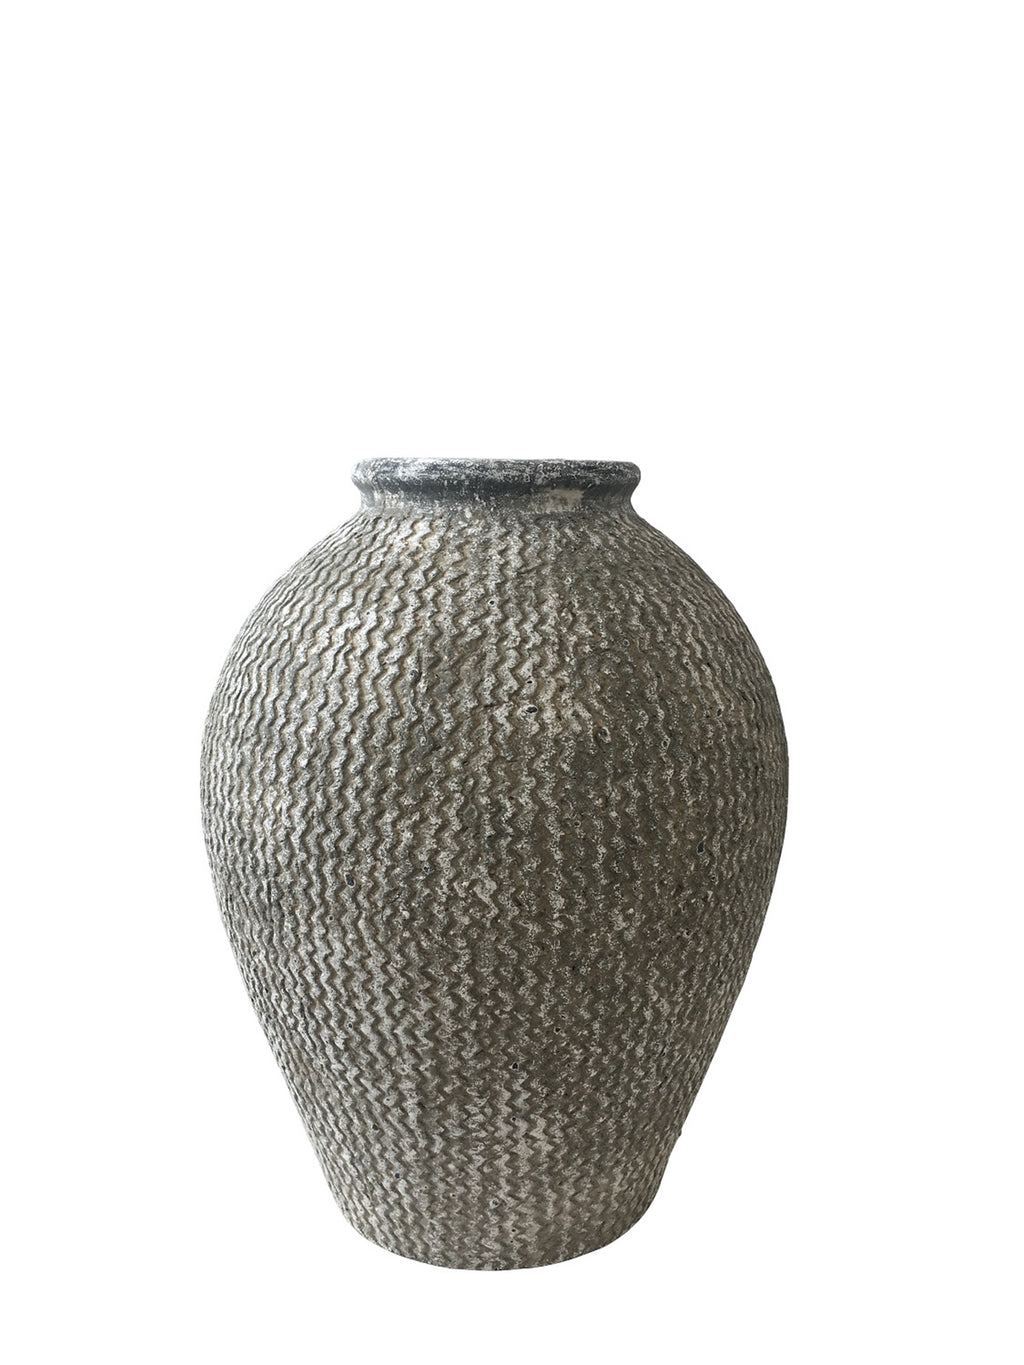 Sm. Ceramic Tall Terracotta Urn - AboutRuby.com